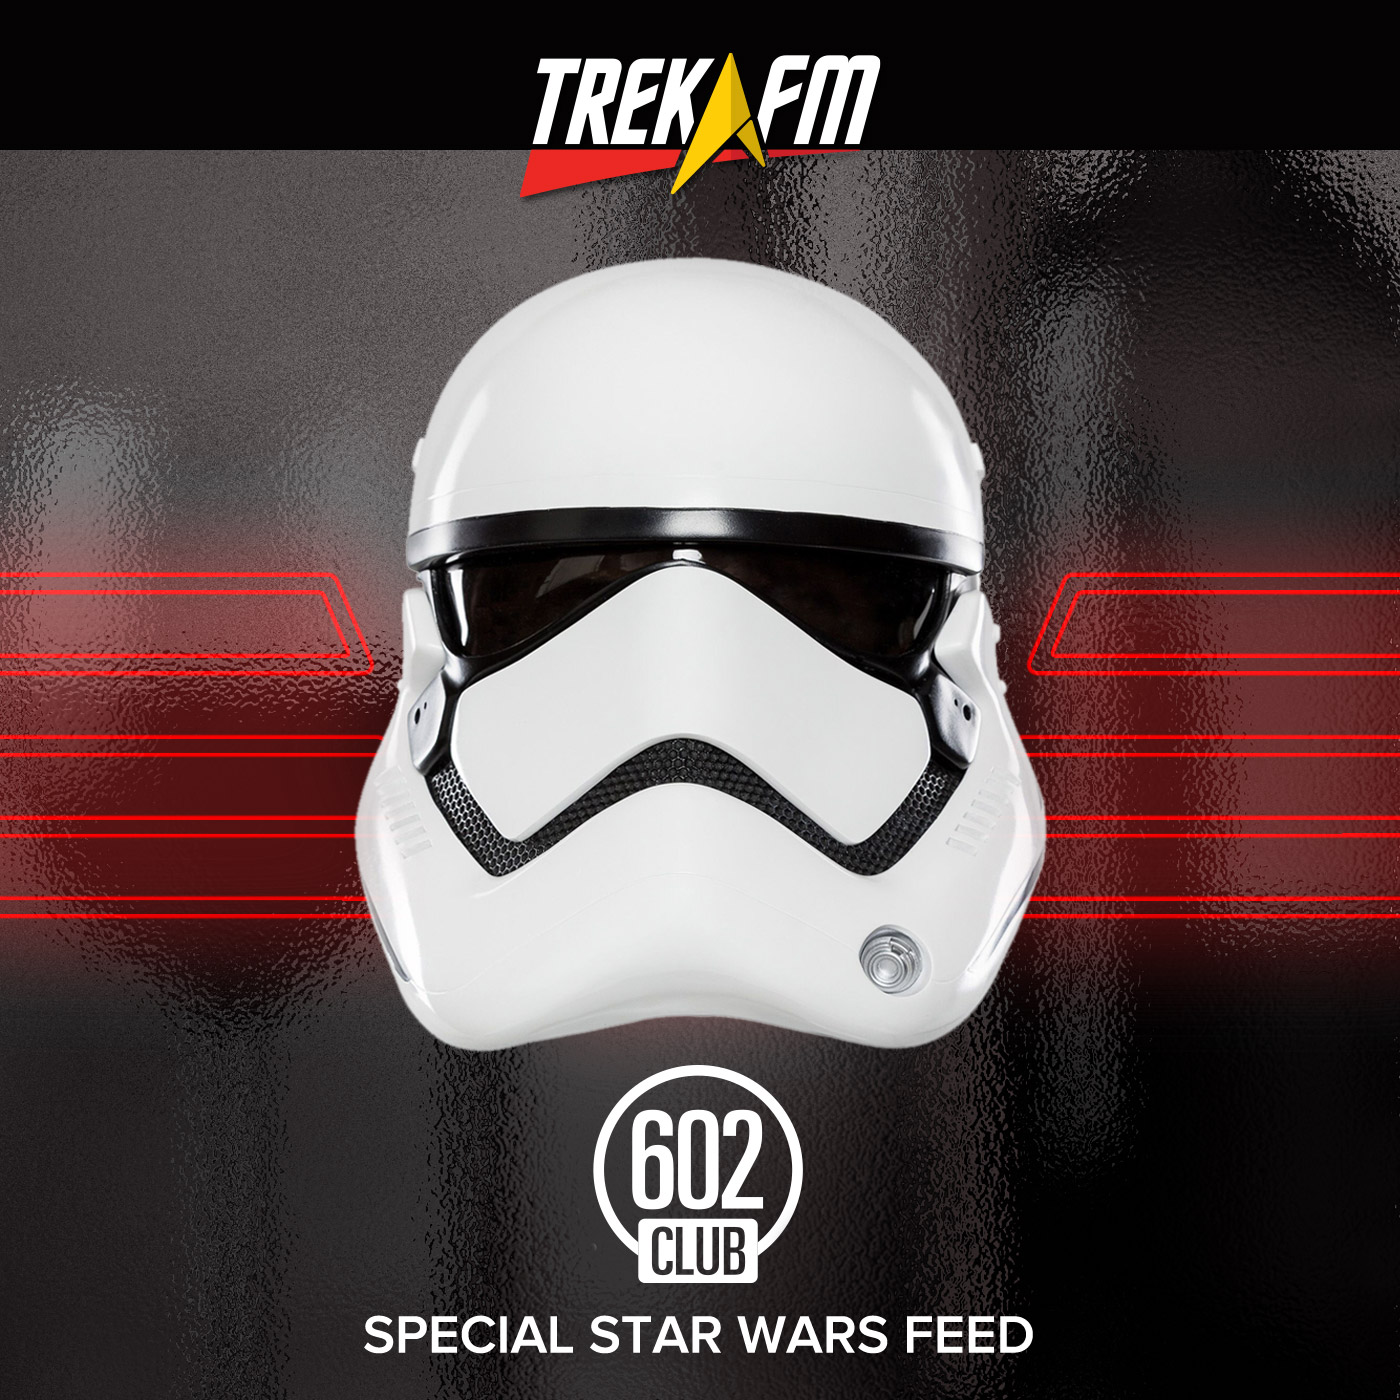 Star Wars: A 602 Club Collection - Trek.fm